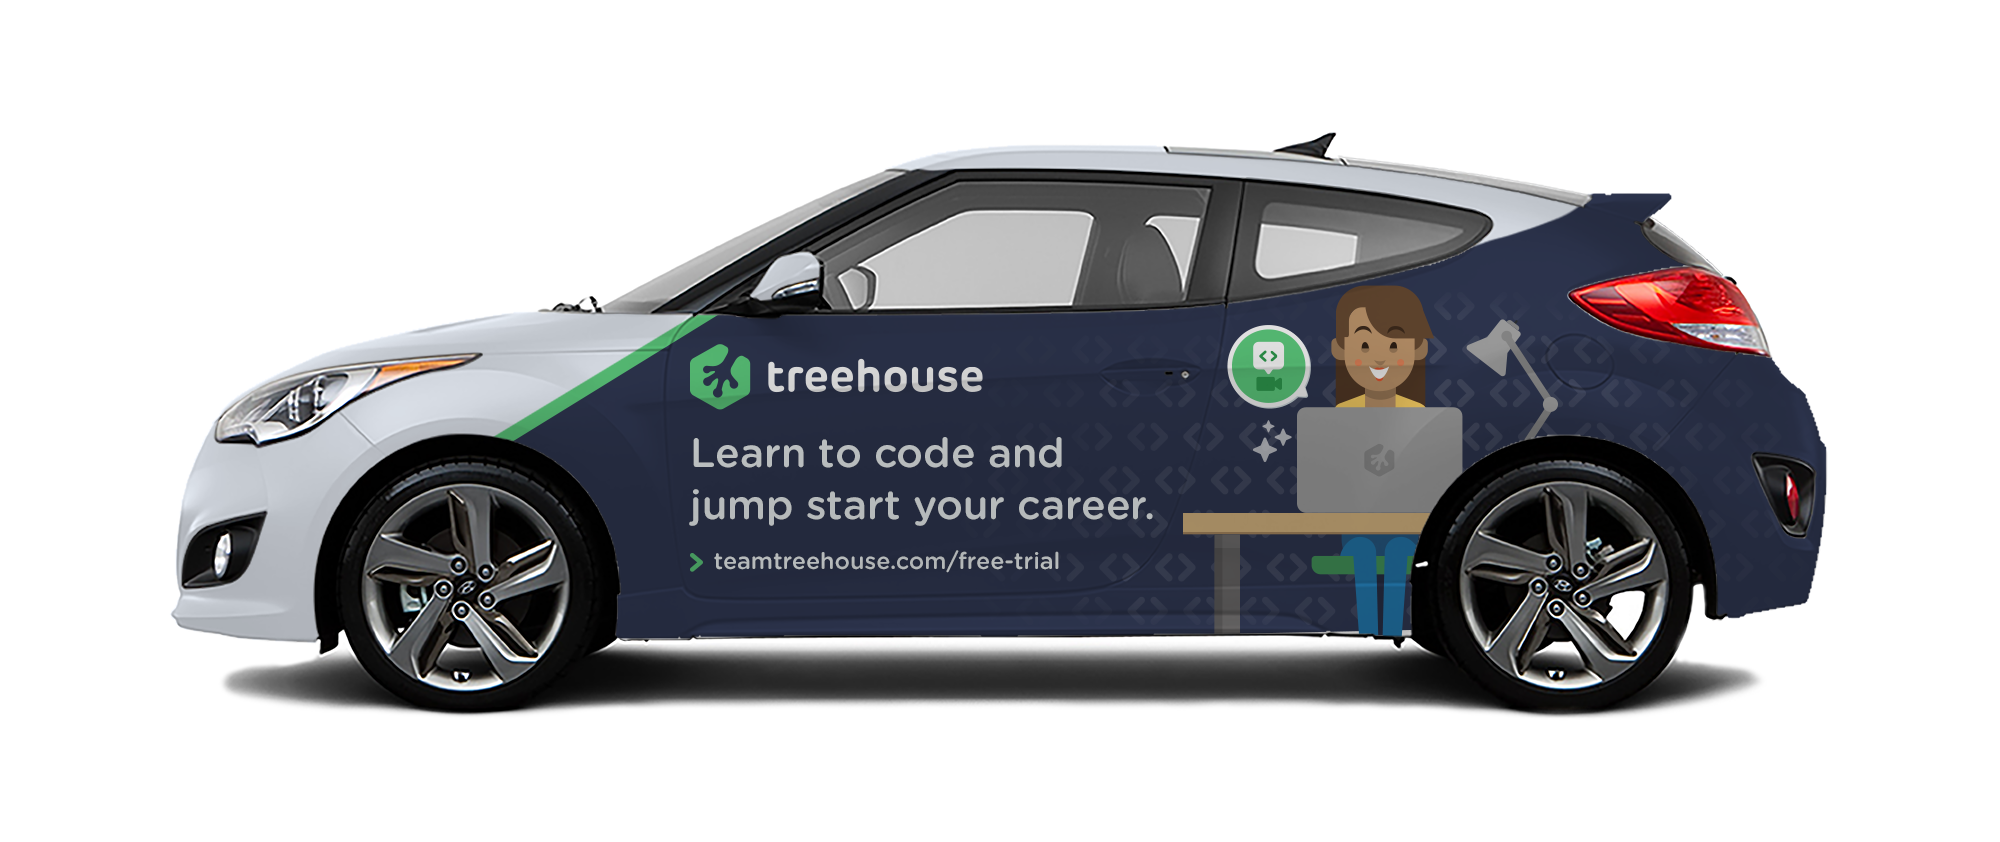 Car Ad for Treehouse